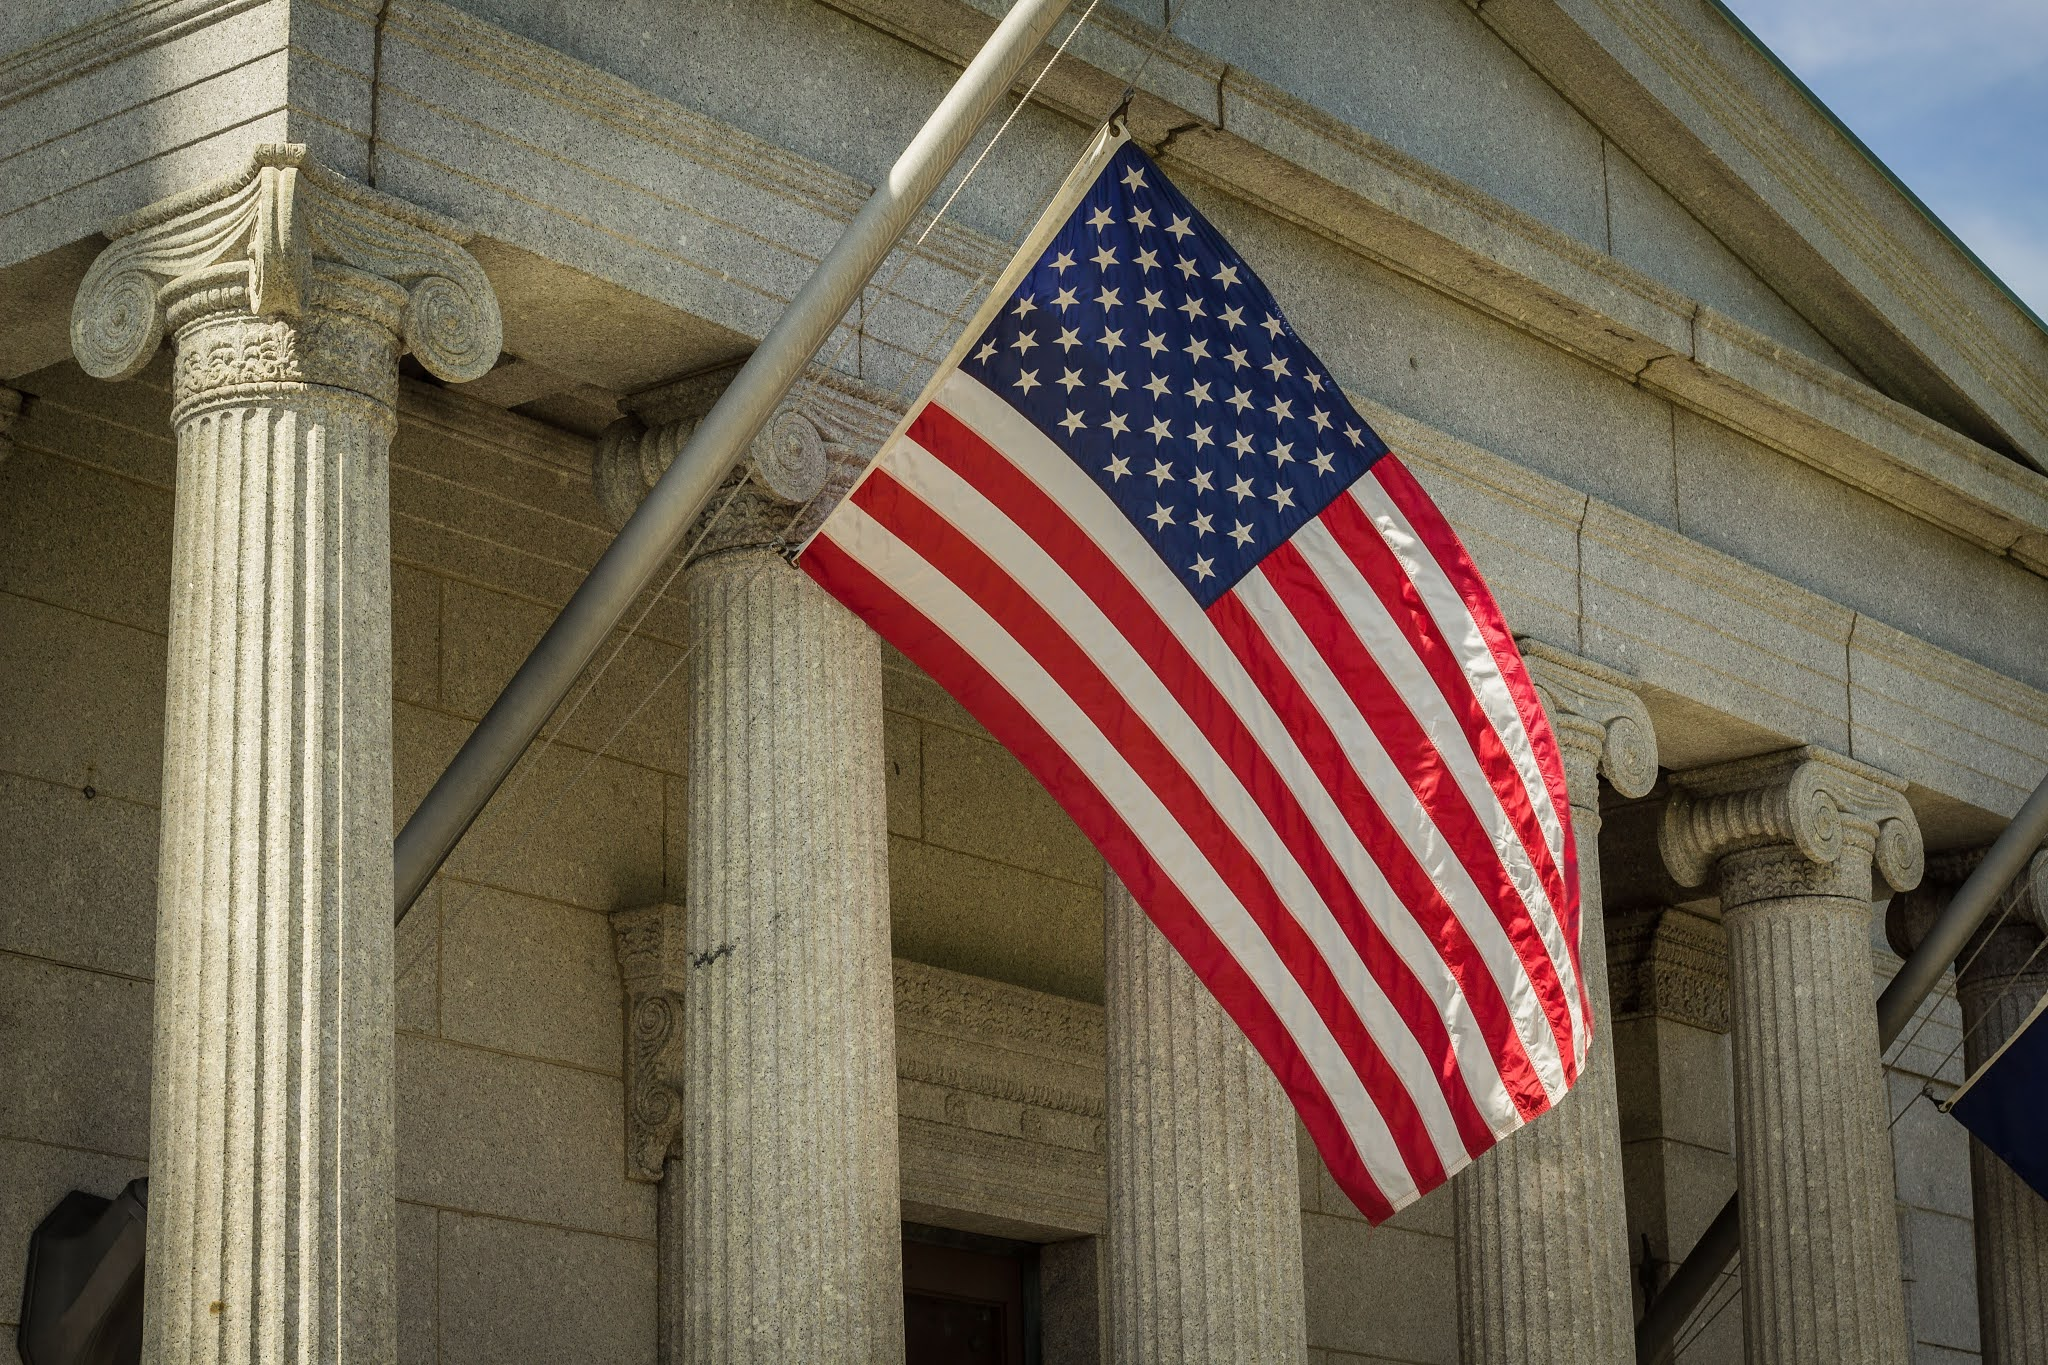 An American flag on a building in Boston CC0 image from Unsplash Bonnie Kittle